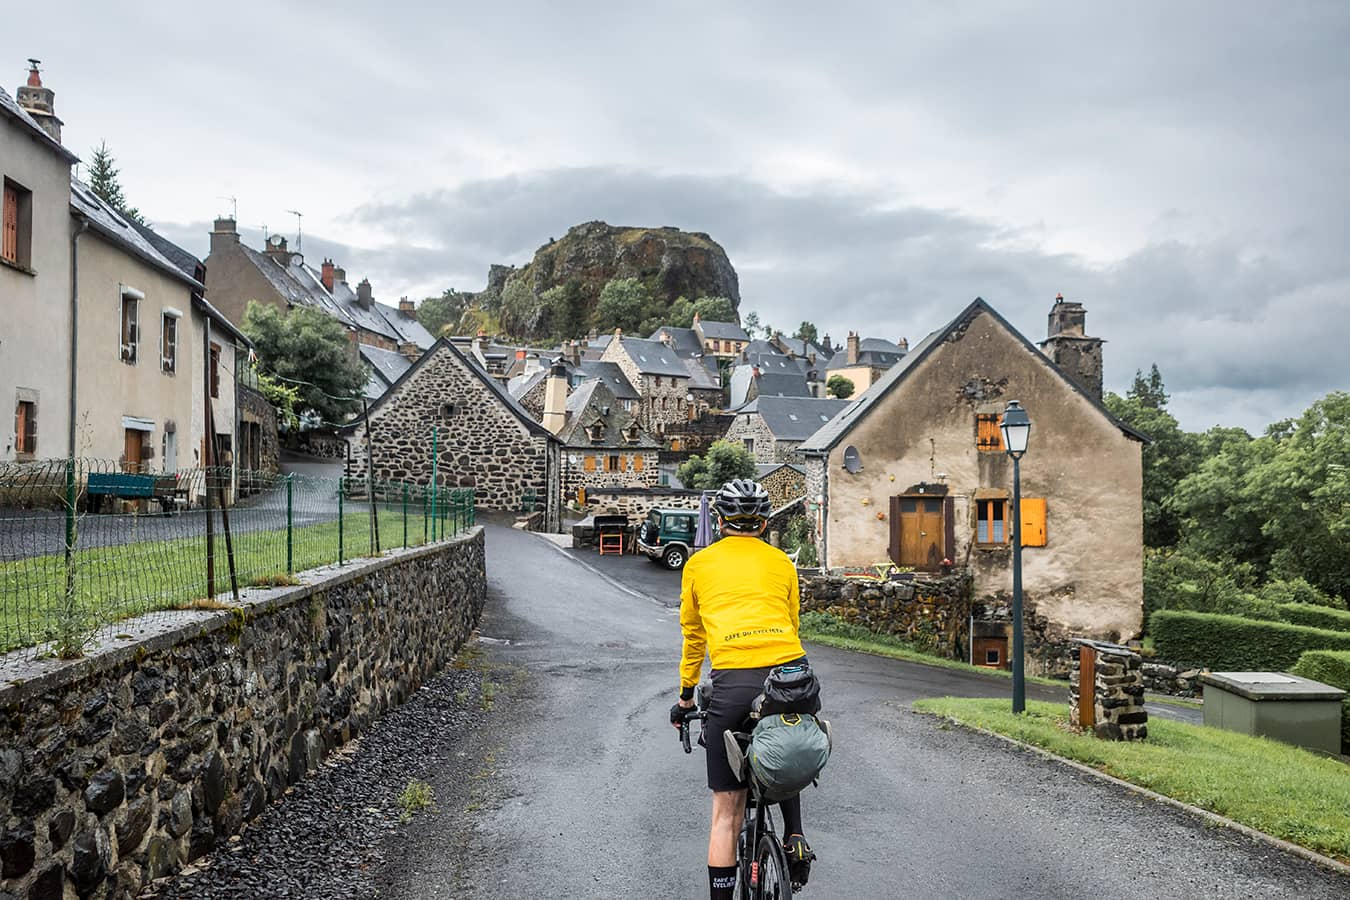 Sophie Gateau: A Tour of the Volcanoes of Auvergne